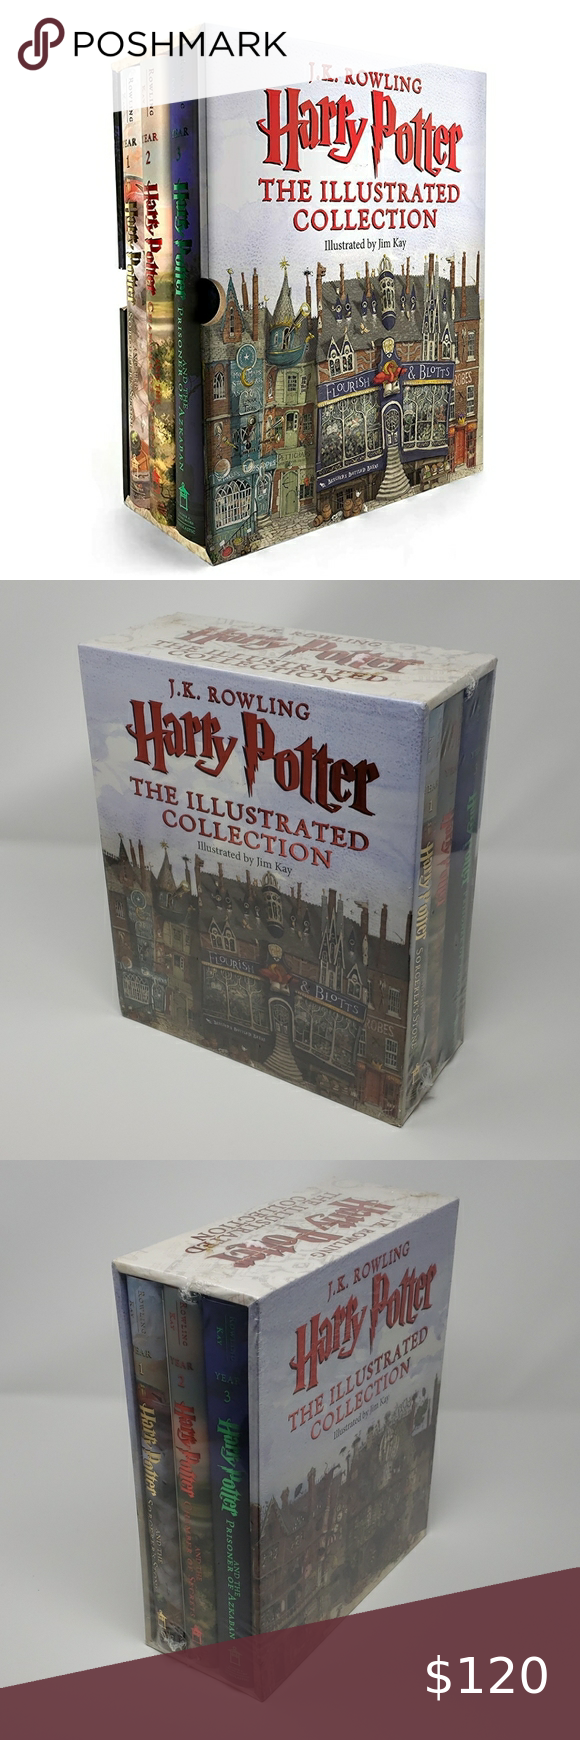 Nwt Harry Potter Illustrated Collection Book Set In 2020 Harry Potter Illustrations Harry Potter Illustrated Book Book Set